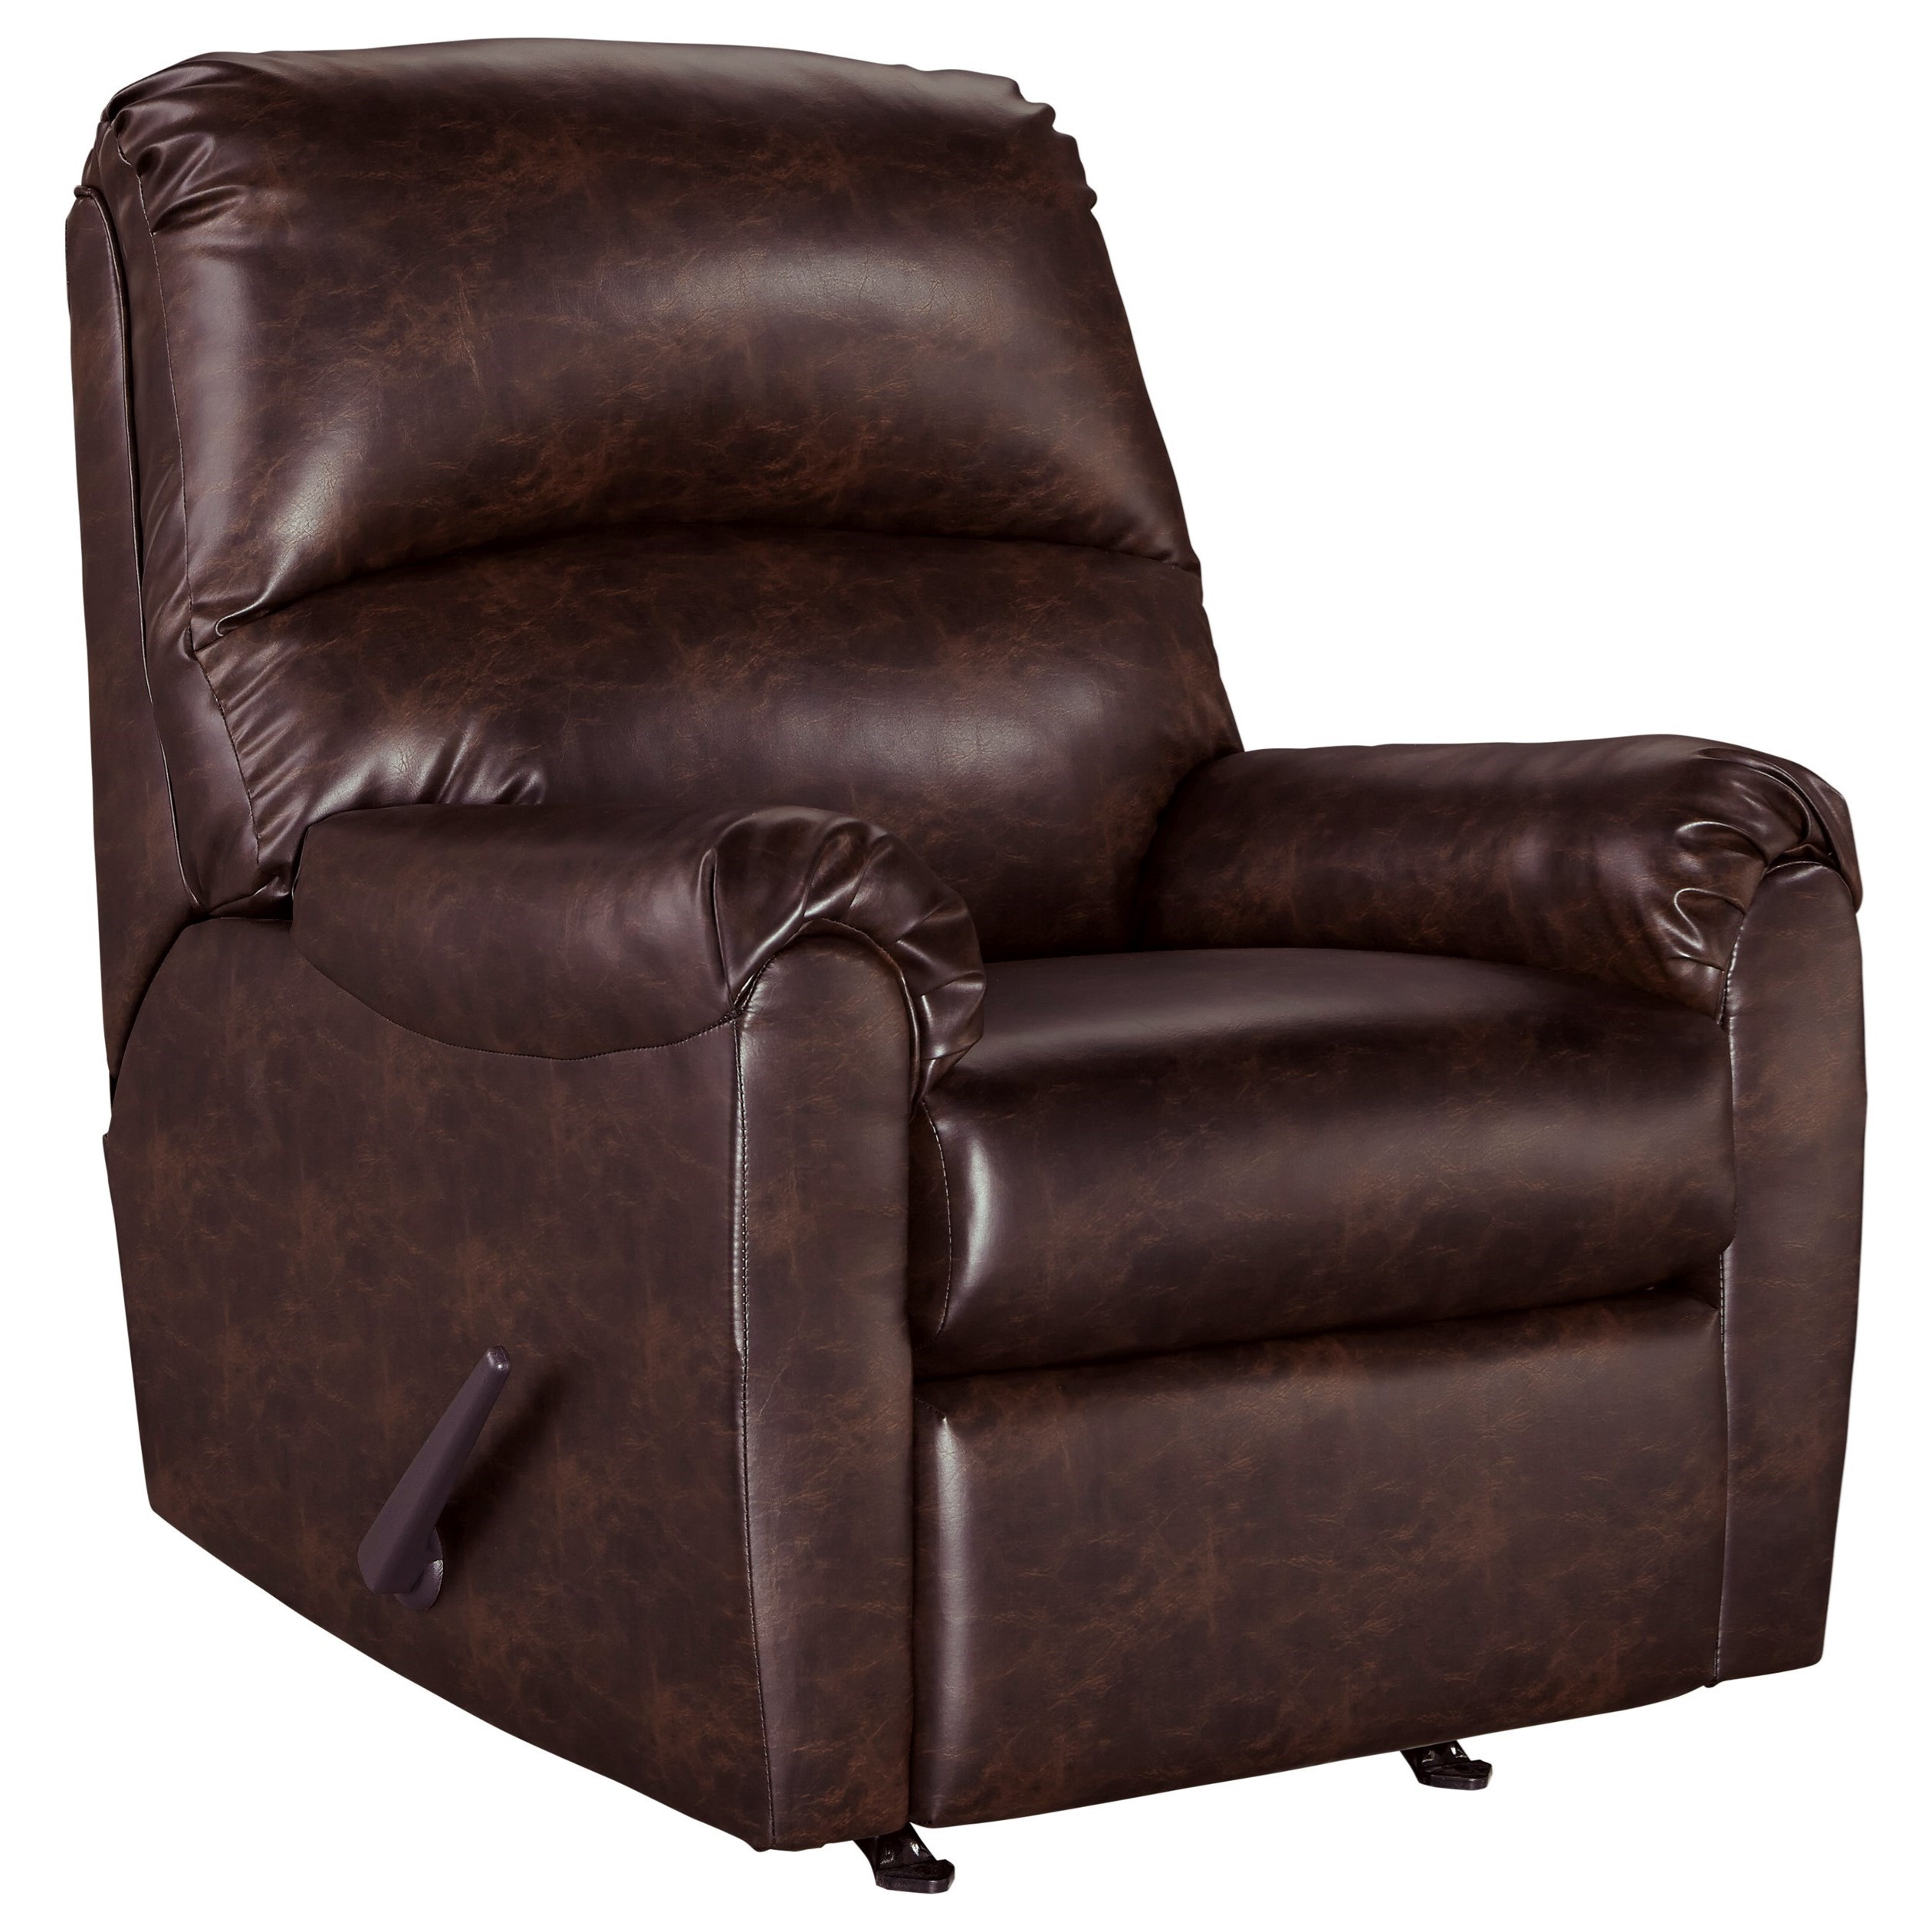 Signature Design By Ashley Talco 6550325 Faux Leather Rocker Recliner Household Furniture